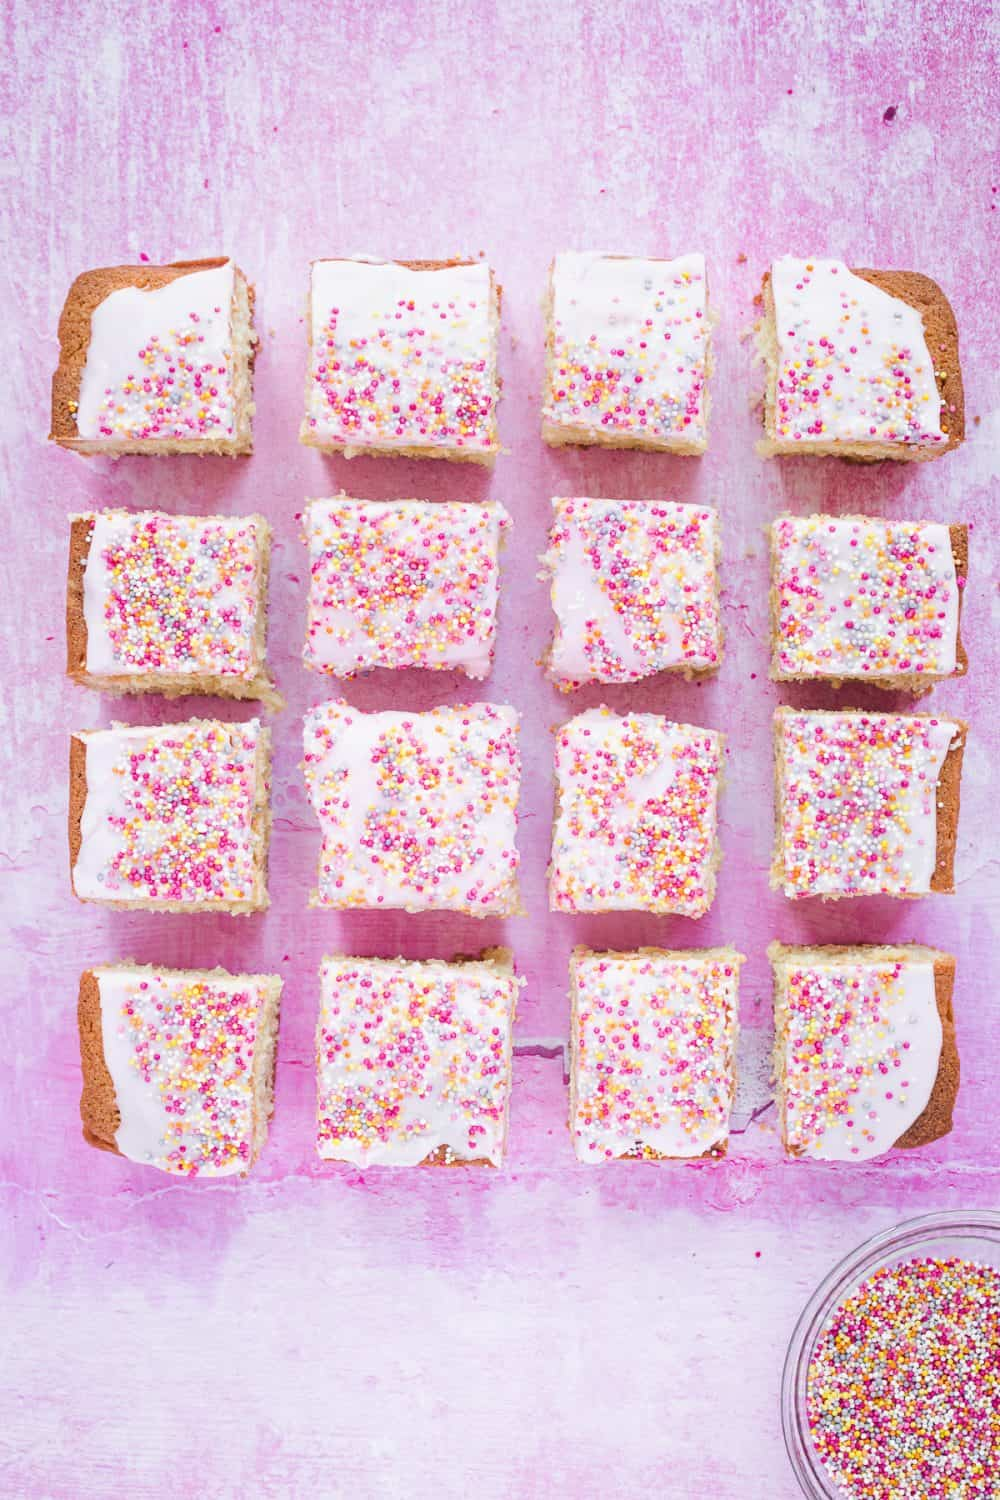 Tottenham Cake cut into squares on a pink background with a bowl of hundreds and thousands.